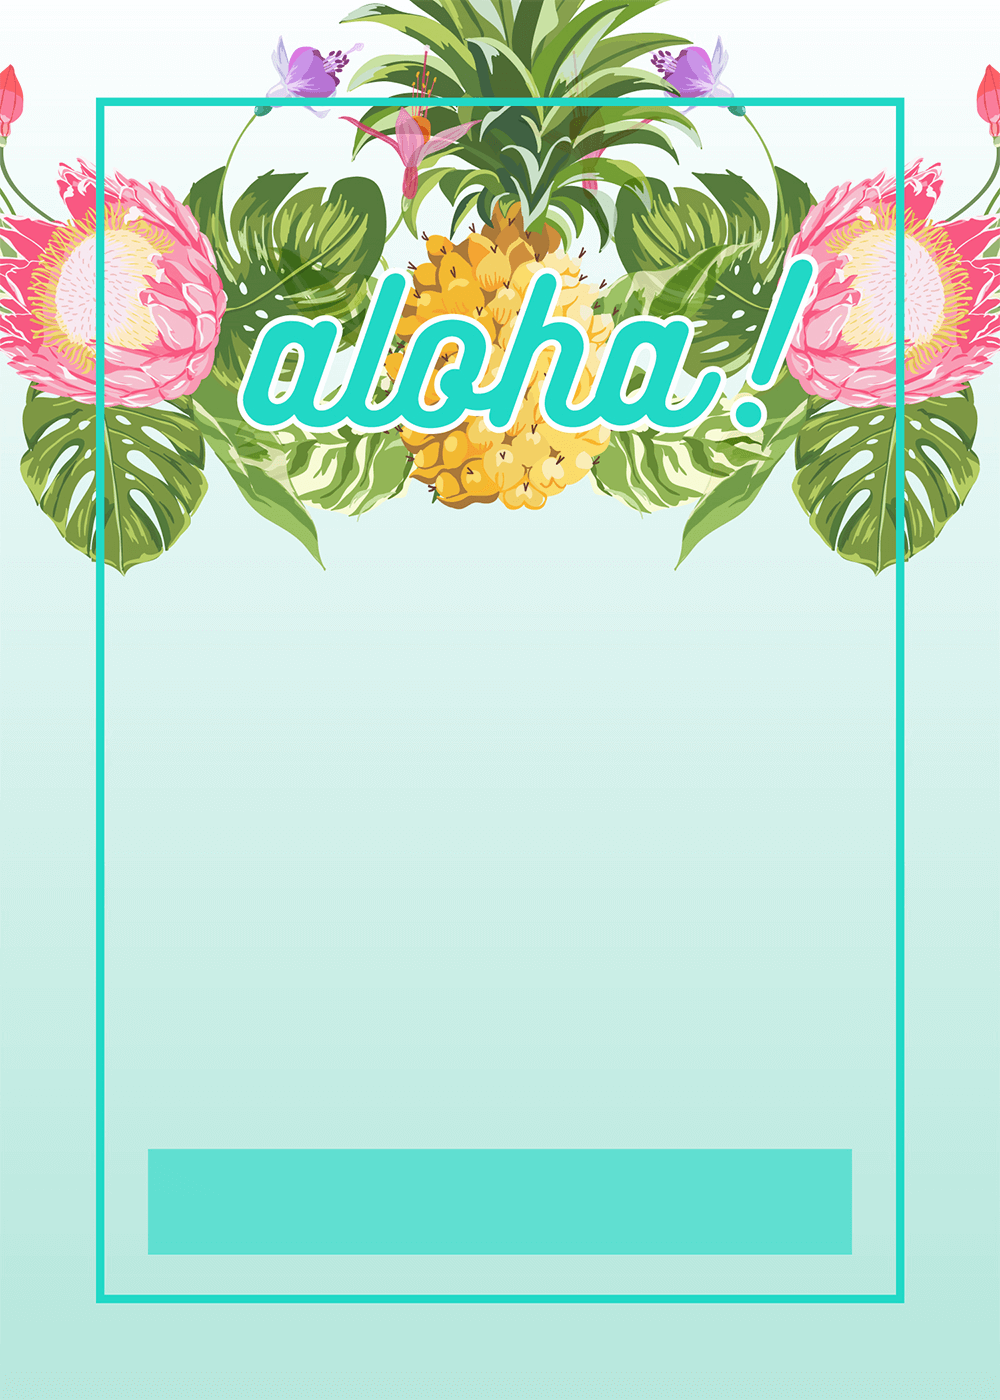 luau party printable summer party invitation template pineapple luau perimeter printable birthday invitation template greetings island